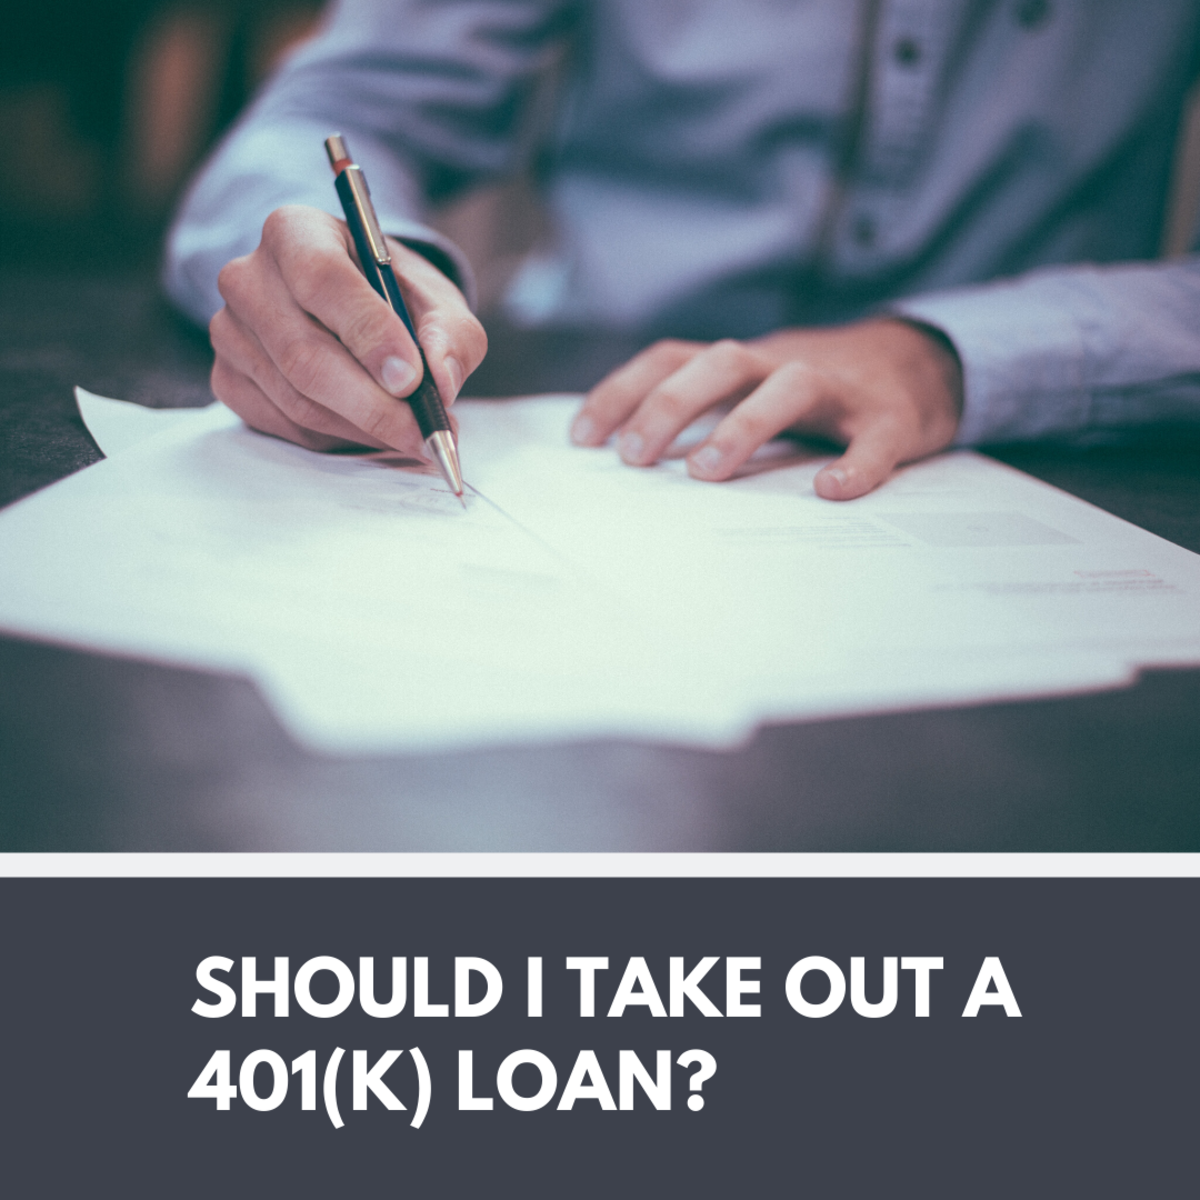 Read on to learn if taking out a 401(k) loan is right for you.